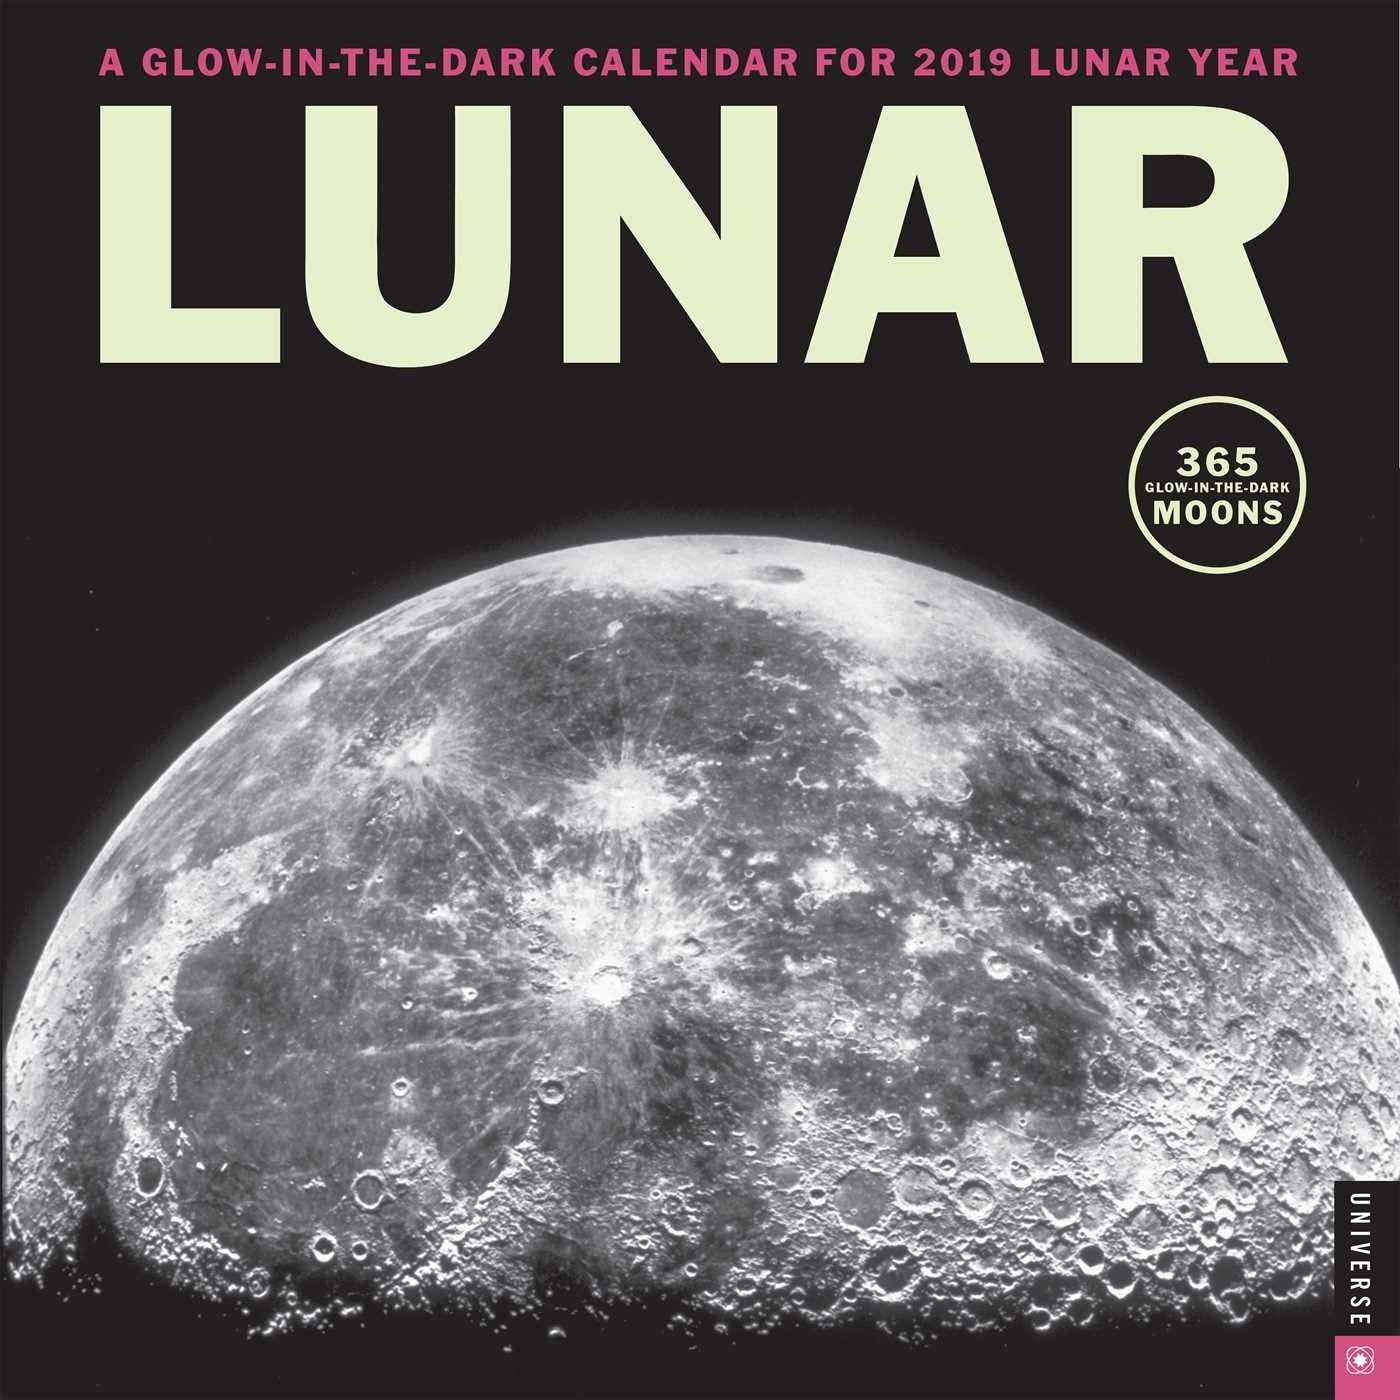 Lunar 2019 Wall Calendar: A Glow-in-the-Dark Calendar for the Lunar Year